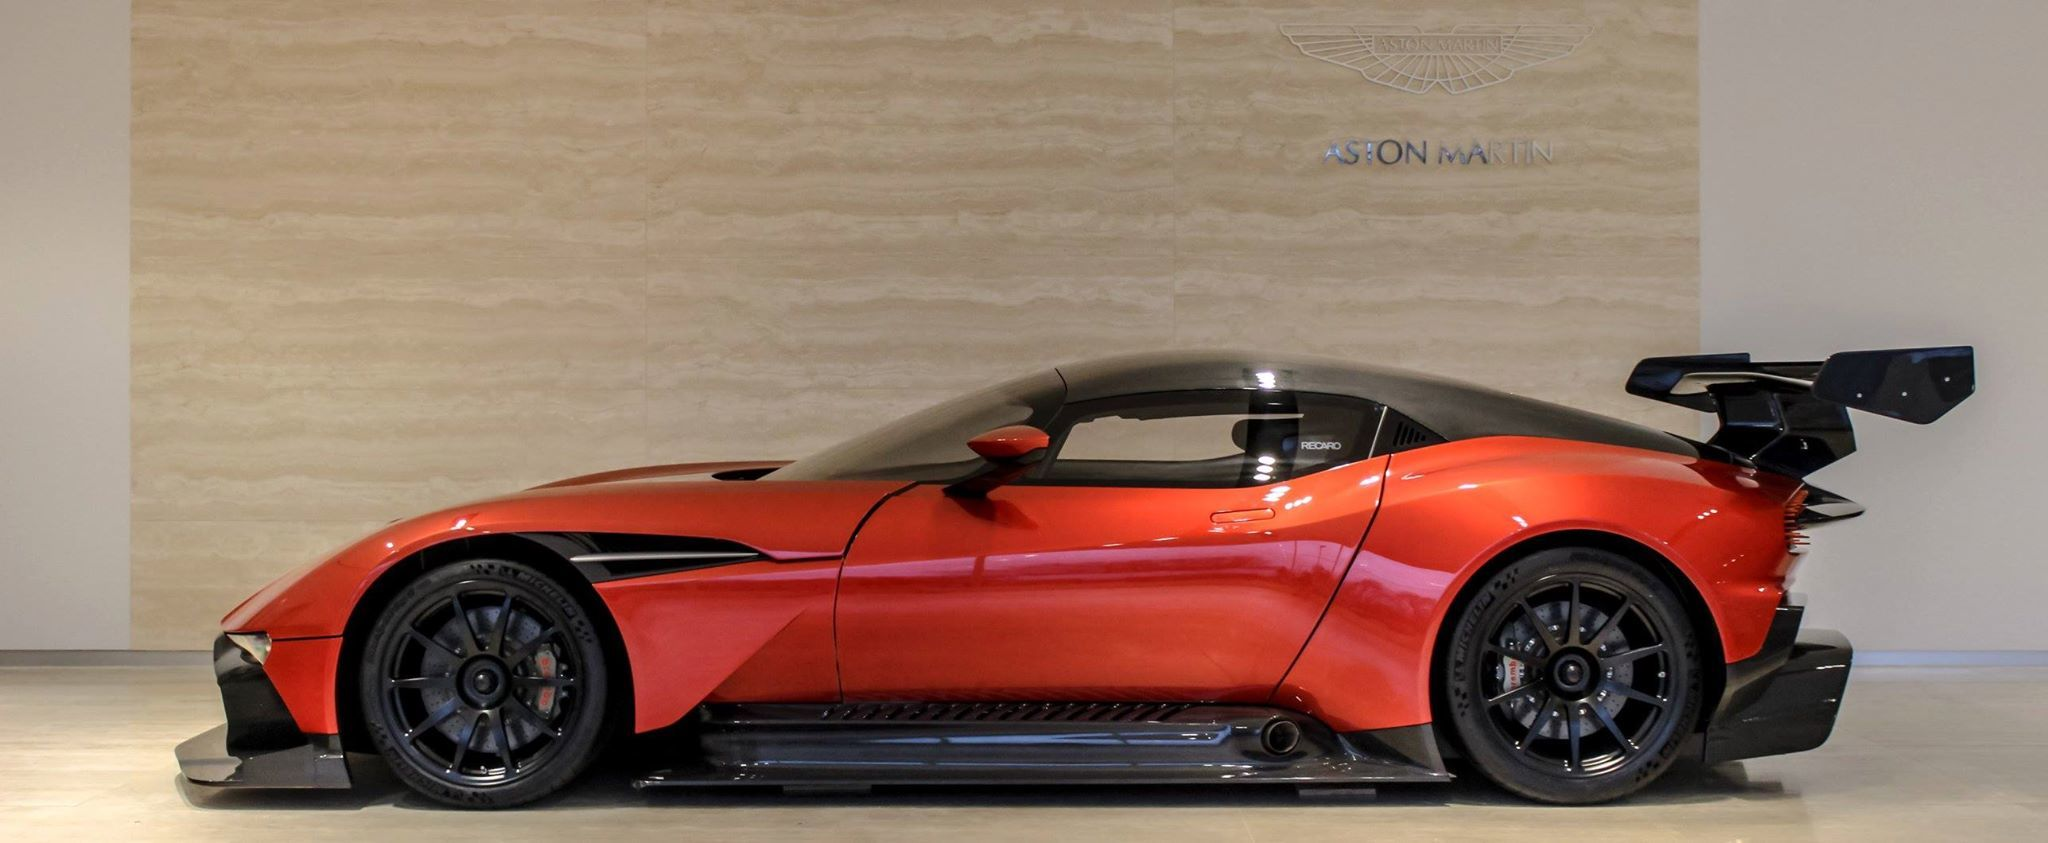 3 4 Million Will Buy You This Aston Martin Vulcan